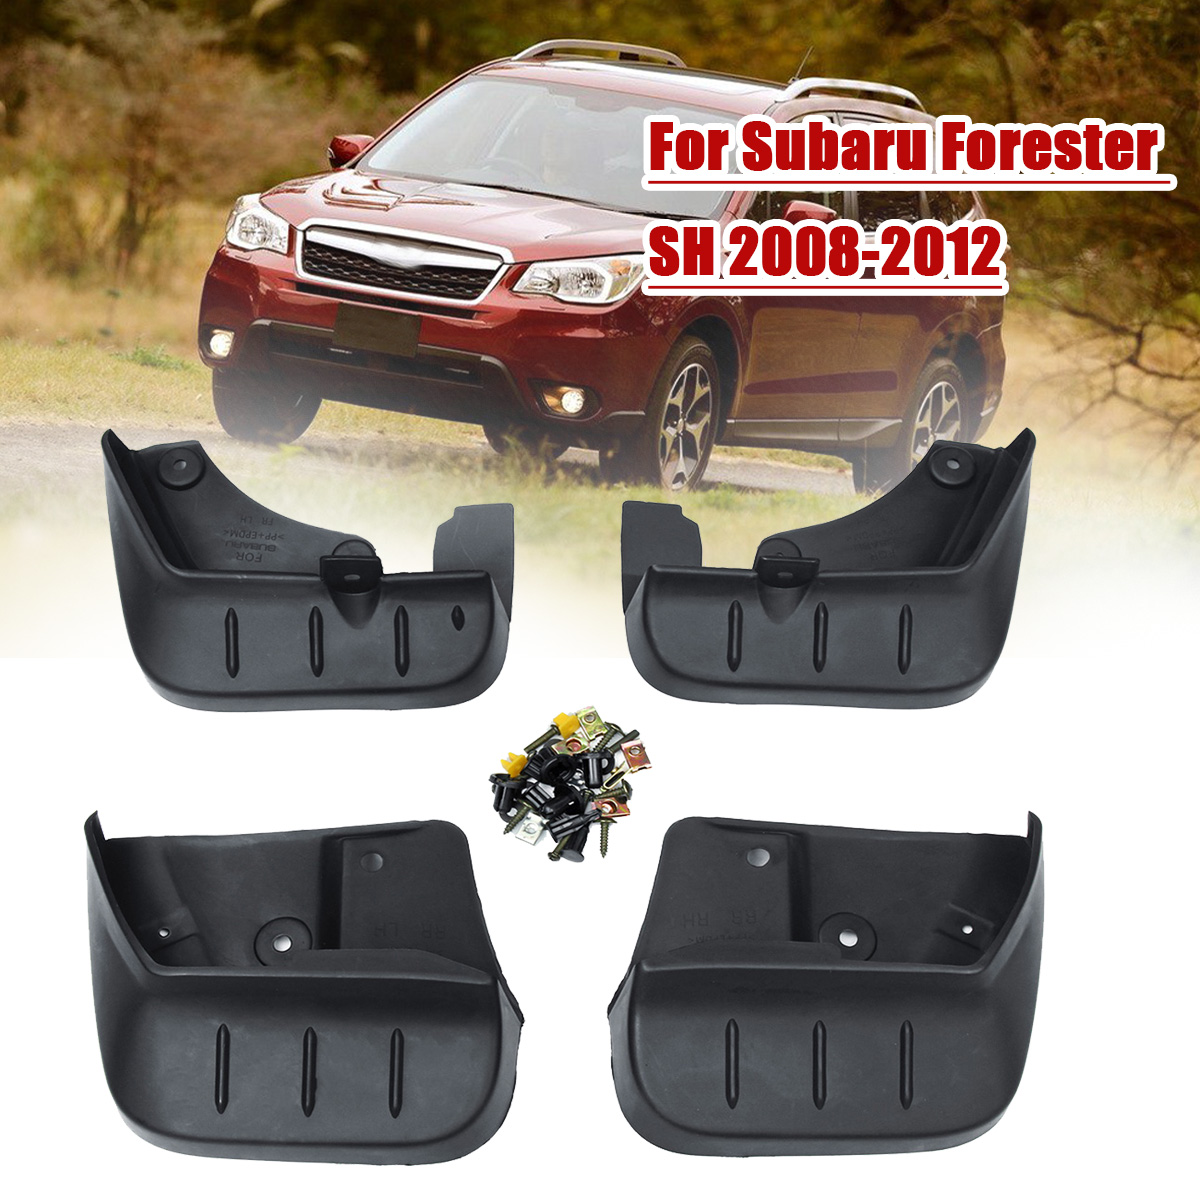 4pcs Car Front Rear Fender Flares Splash Guards Mud Flaps Mudguards for Subaru Forester SH 2008 2009 2010 2011 2012